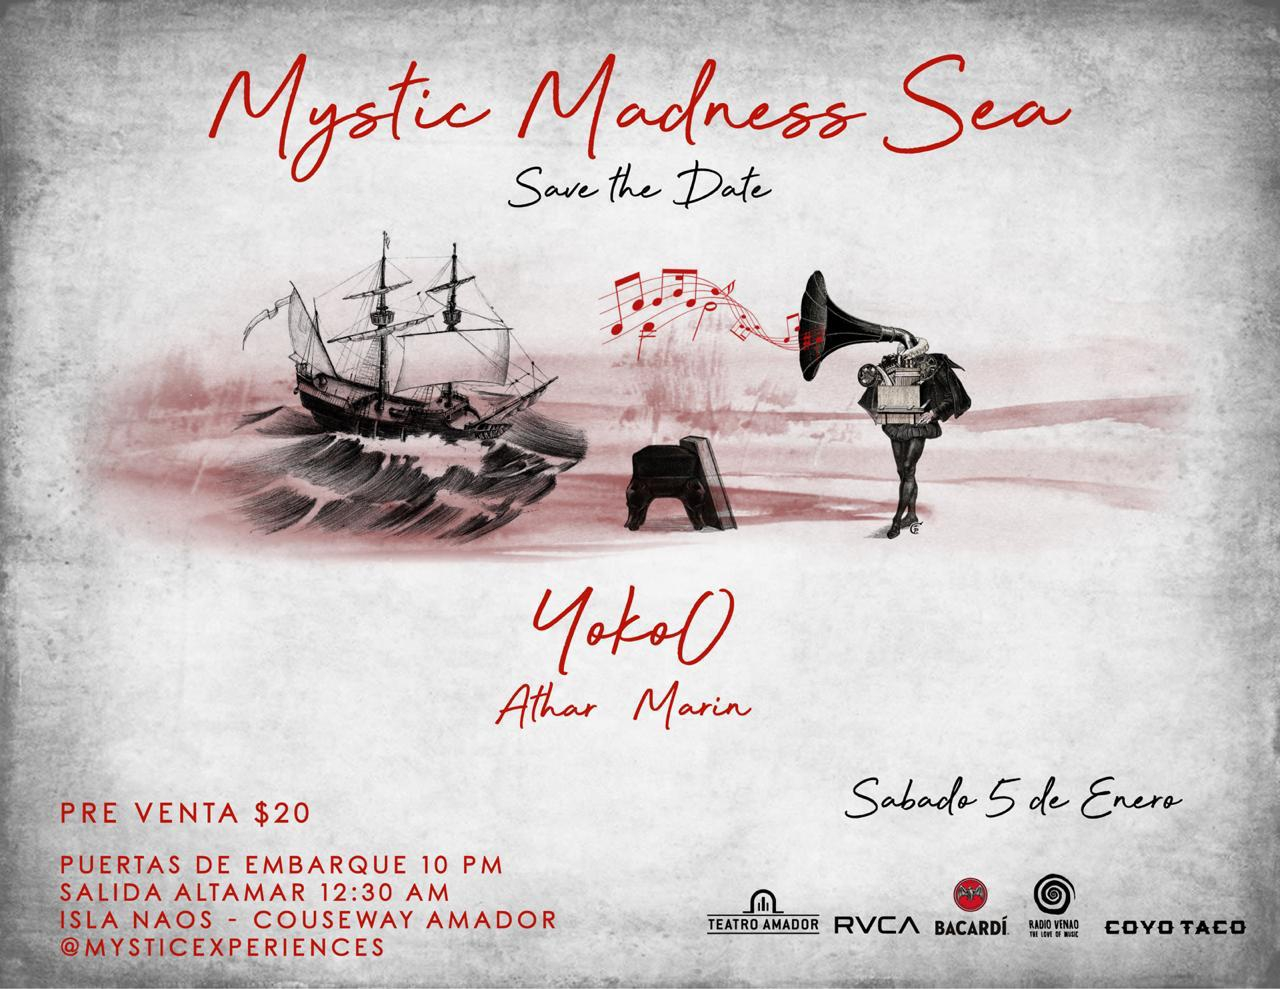 Mystic Madness at Sea